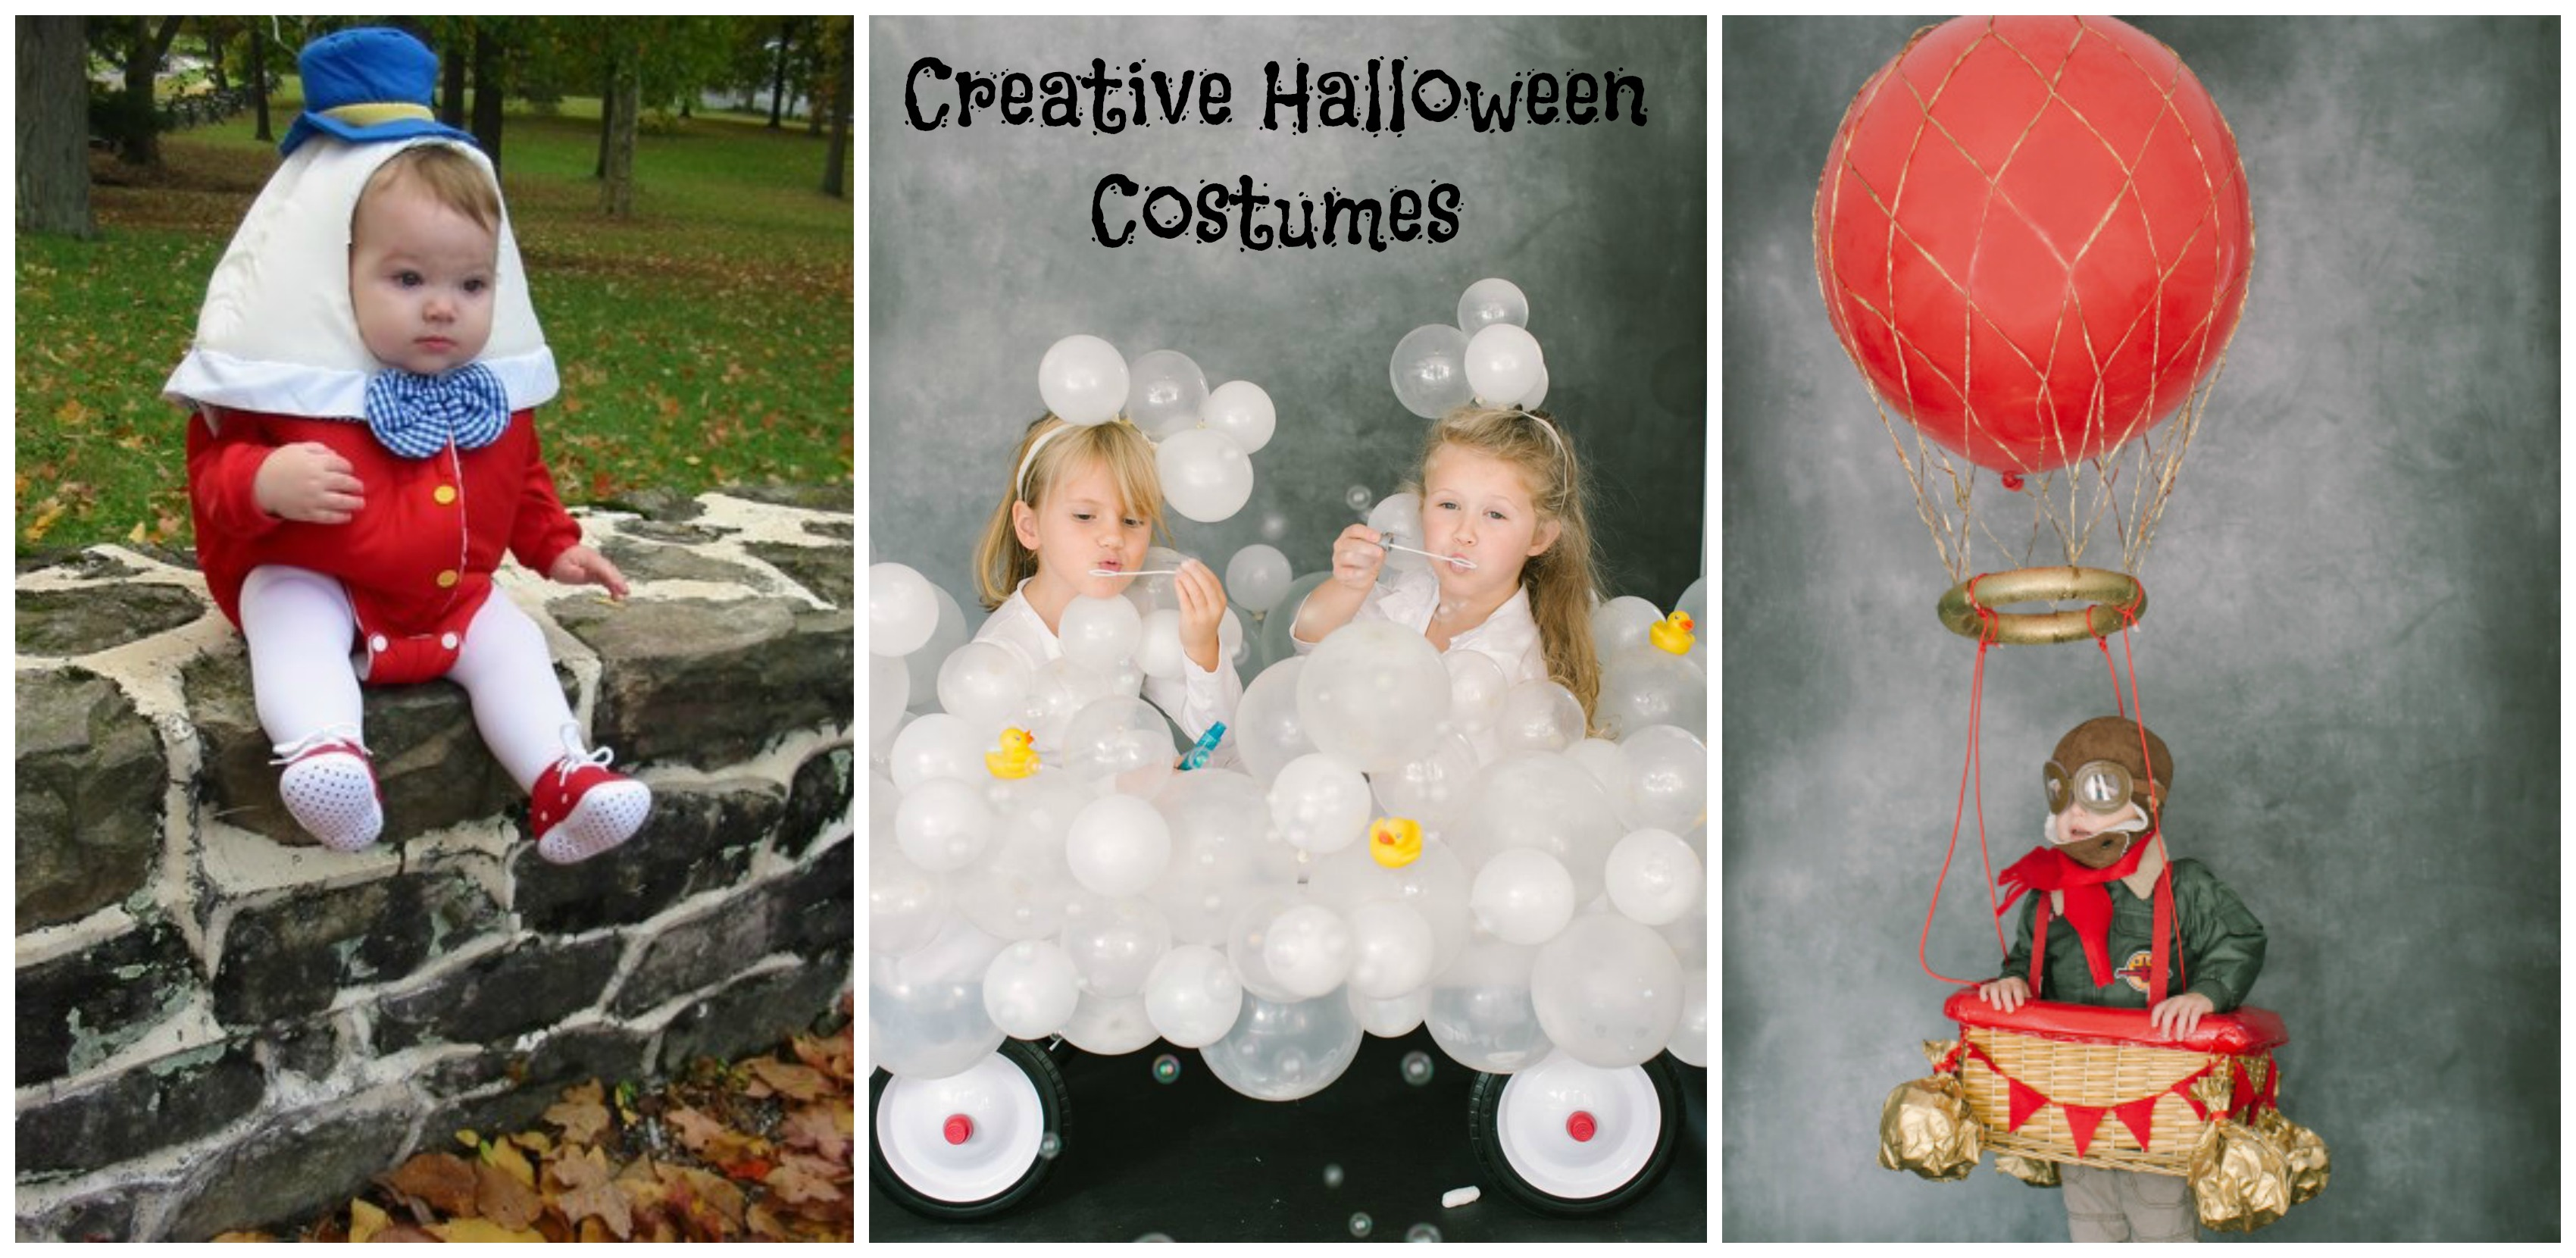 Creative Halloween Costumes Collage